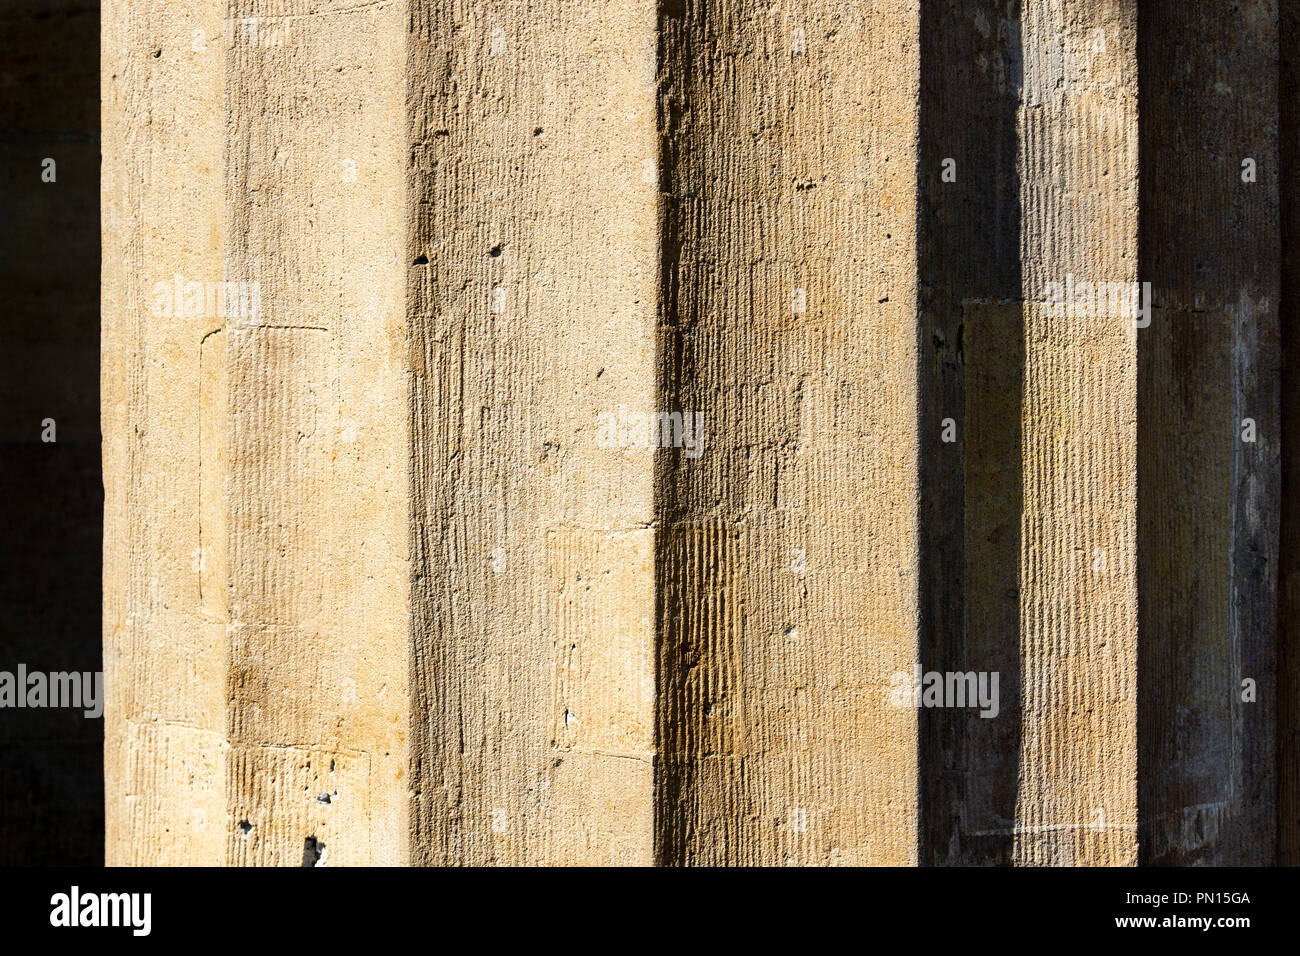 Berlin, Germany, July 28, 2018: Close-Up of Grooves of Architectural Column - Stock Image